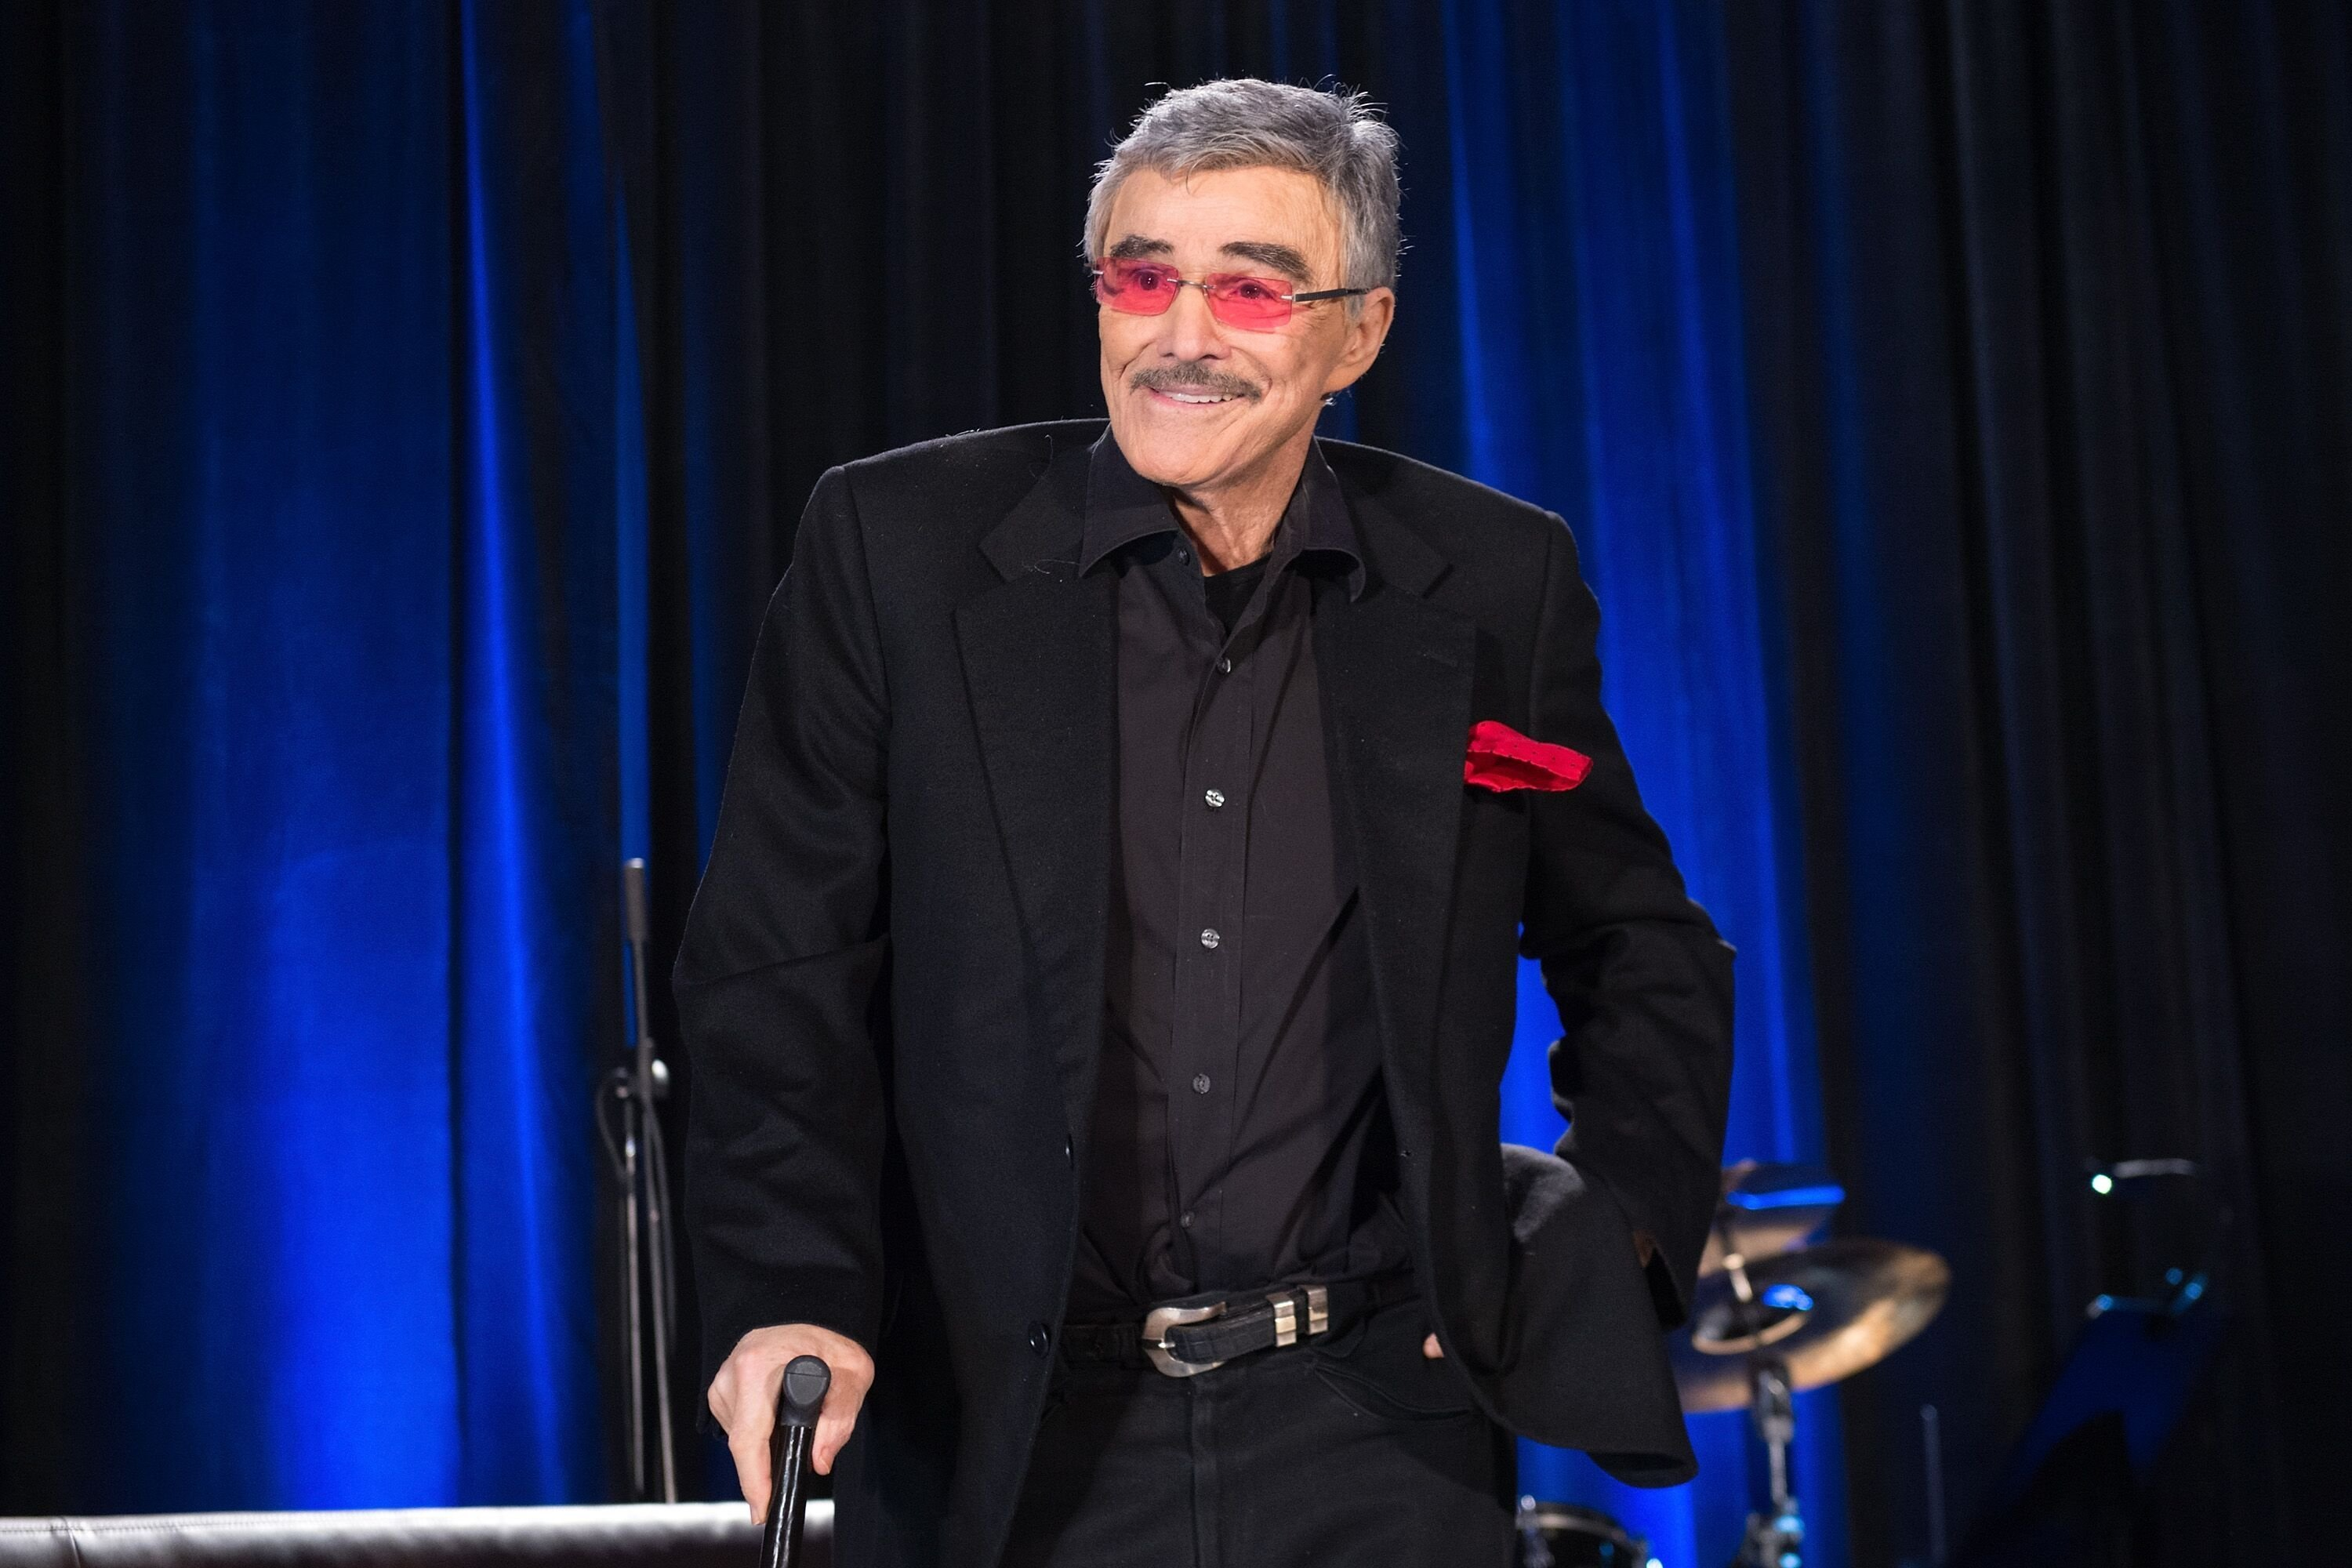 Burt Reynolds attends Wizard World Comic Con Chicago. | Source: Getty Images